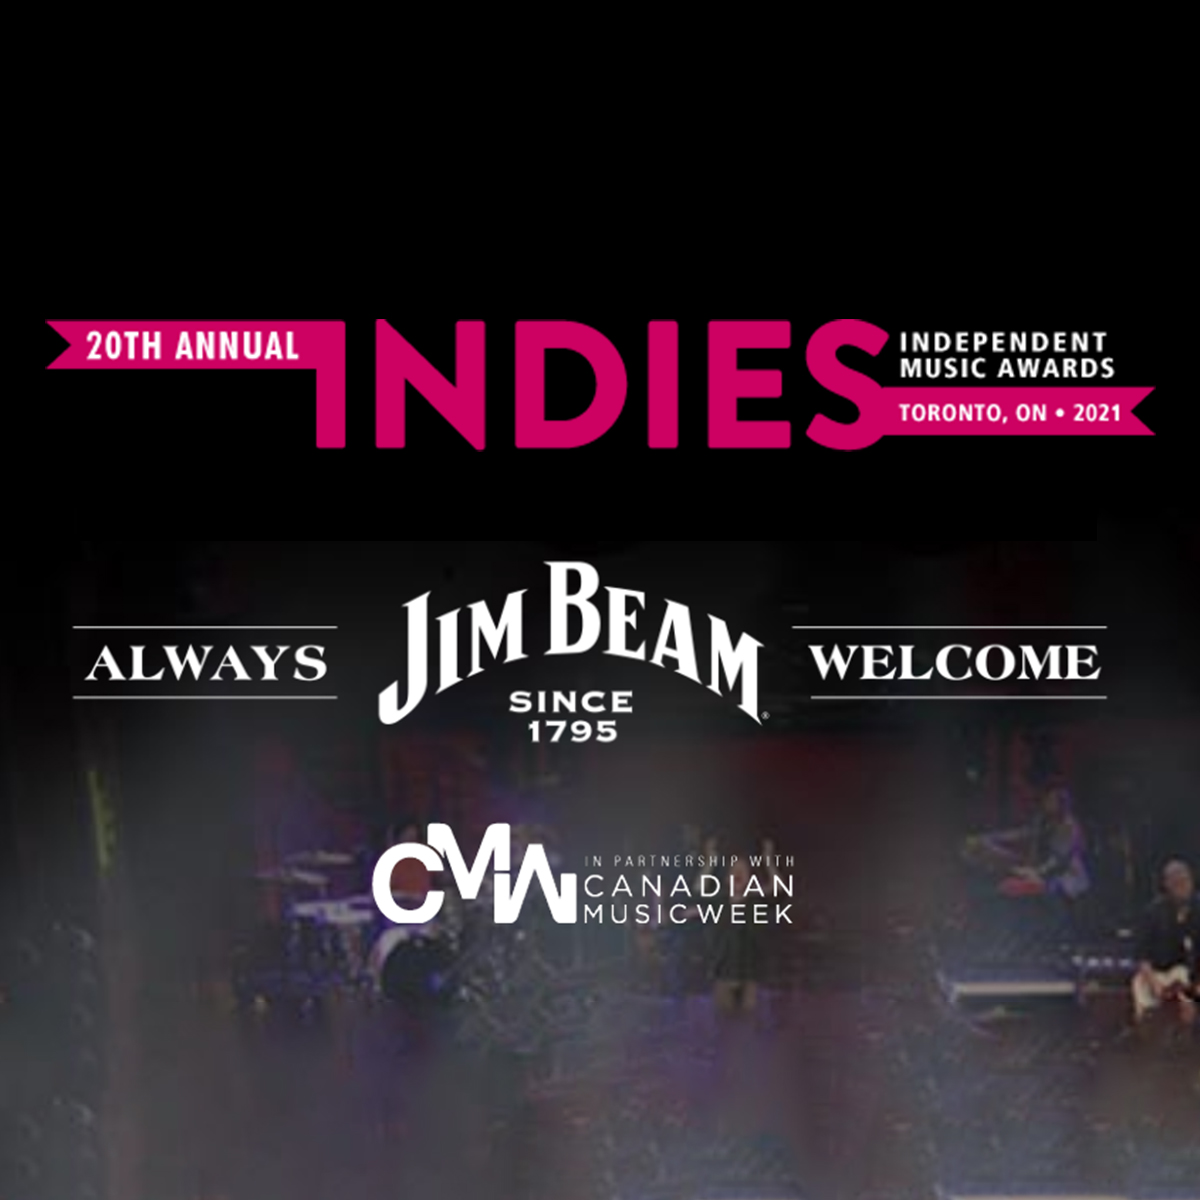 Nominations for the 20th Anniversary INDIES are Now Open!